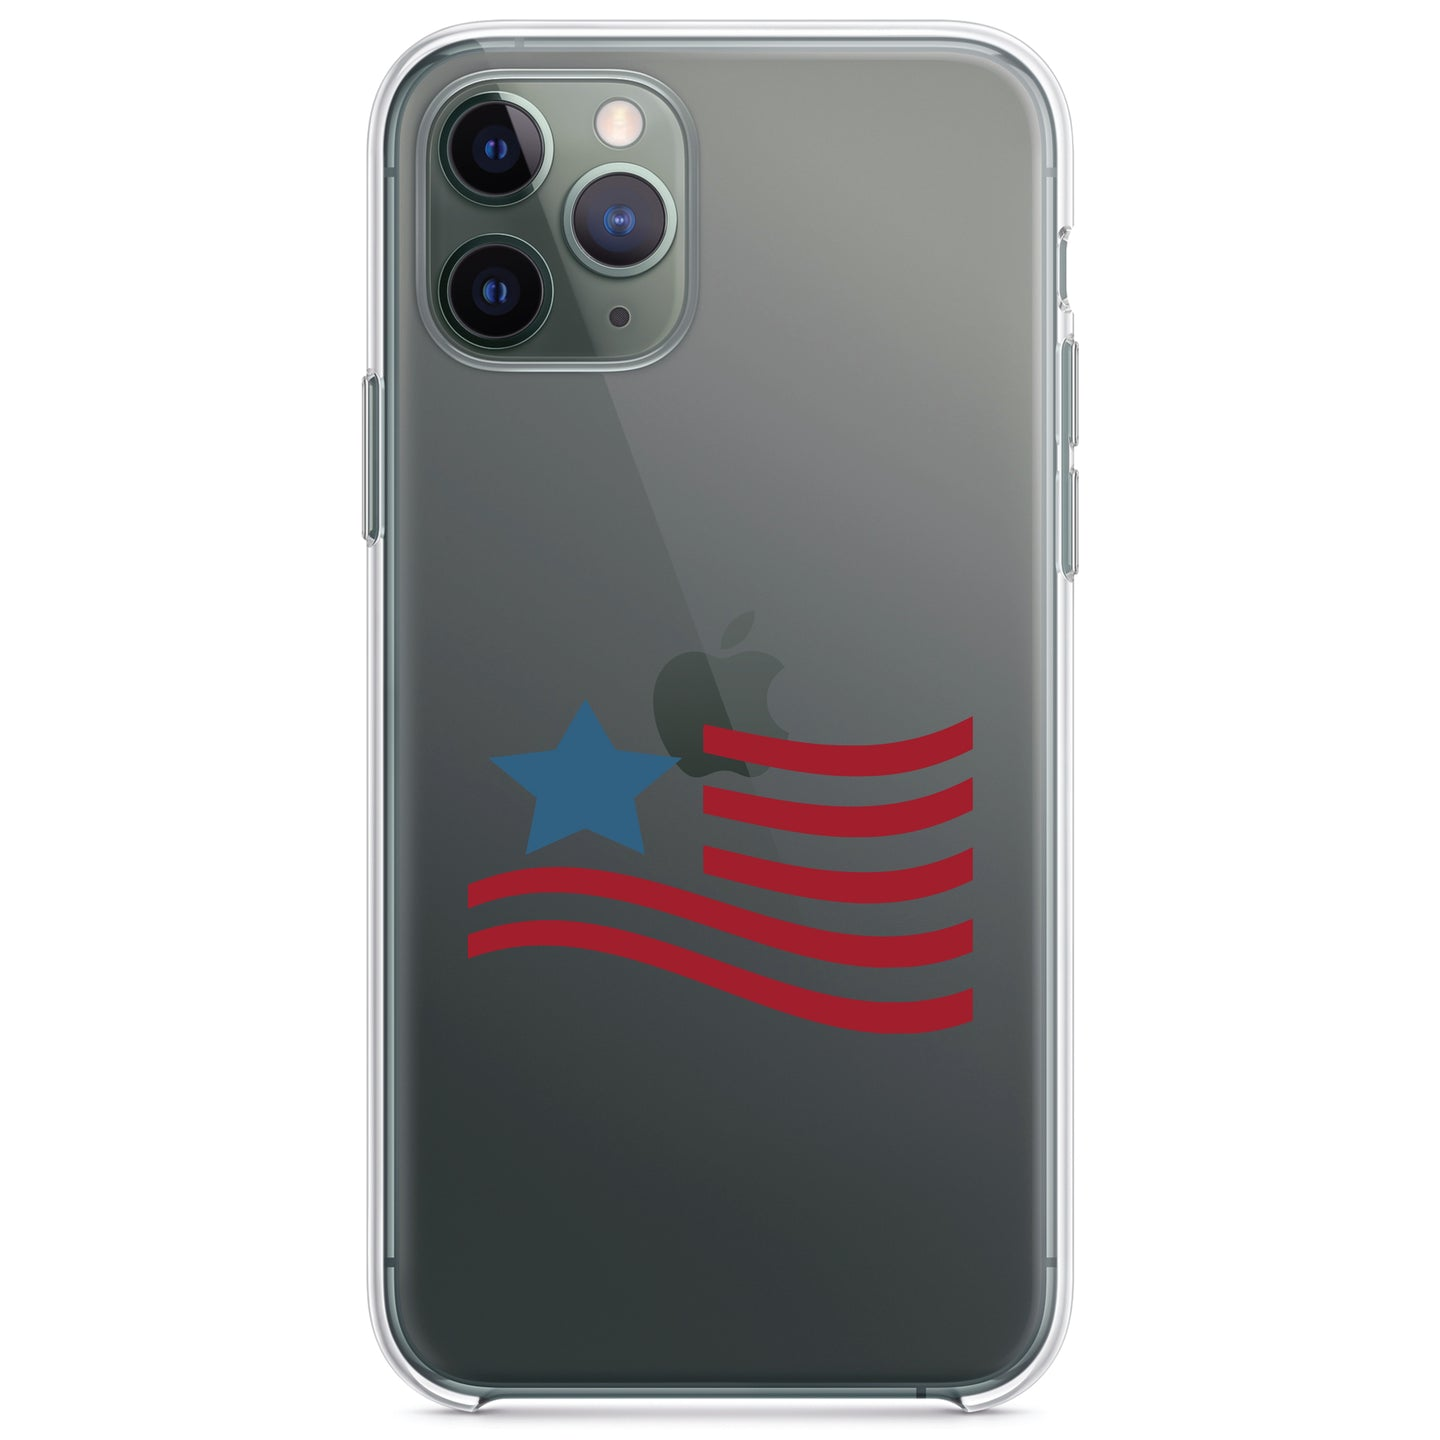 DistinctInk® Clear Shockproof Hybrid Case for Apple iPhone / Samsung Galaxy / Google Pixel - USA Waving Flag Red White & Blue